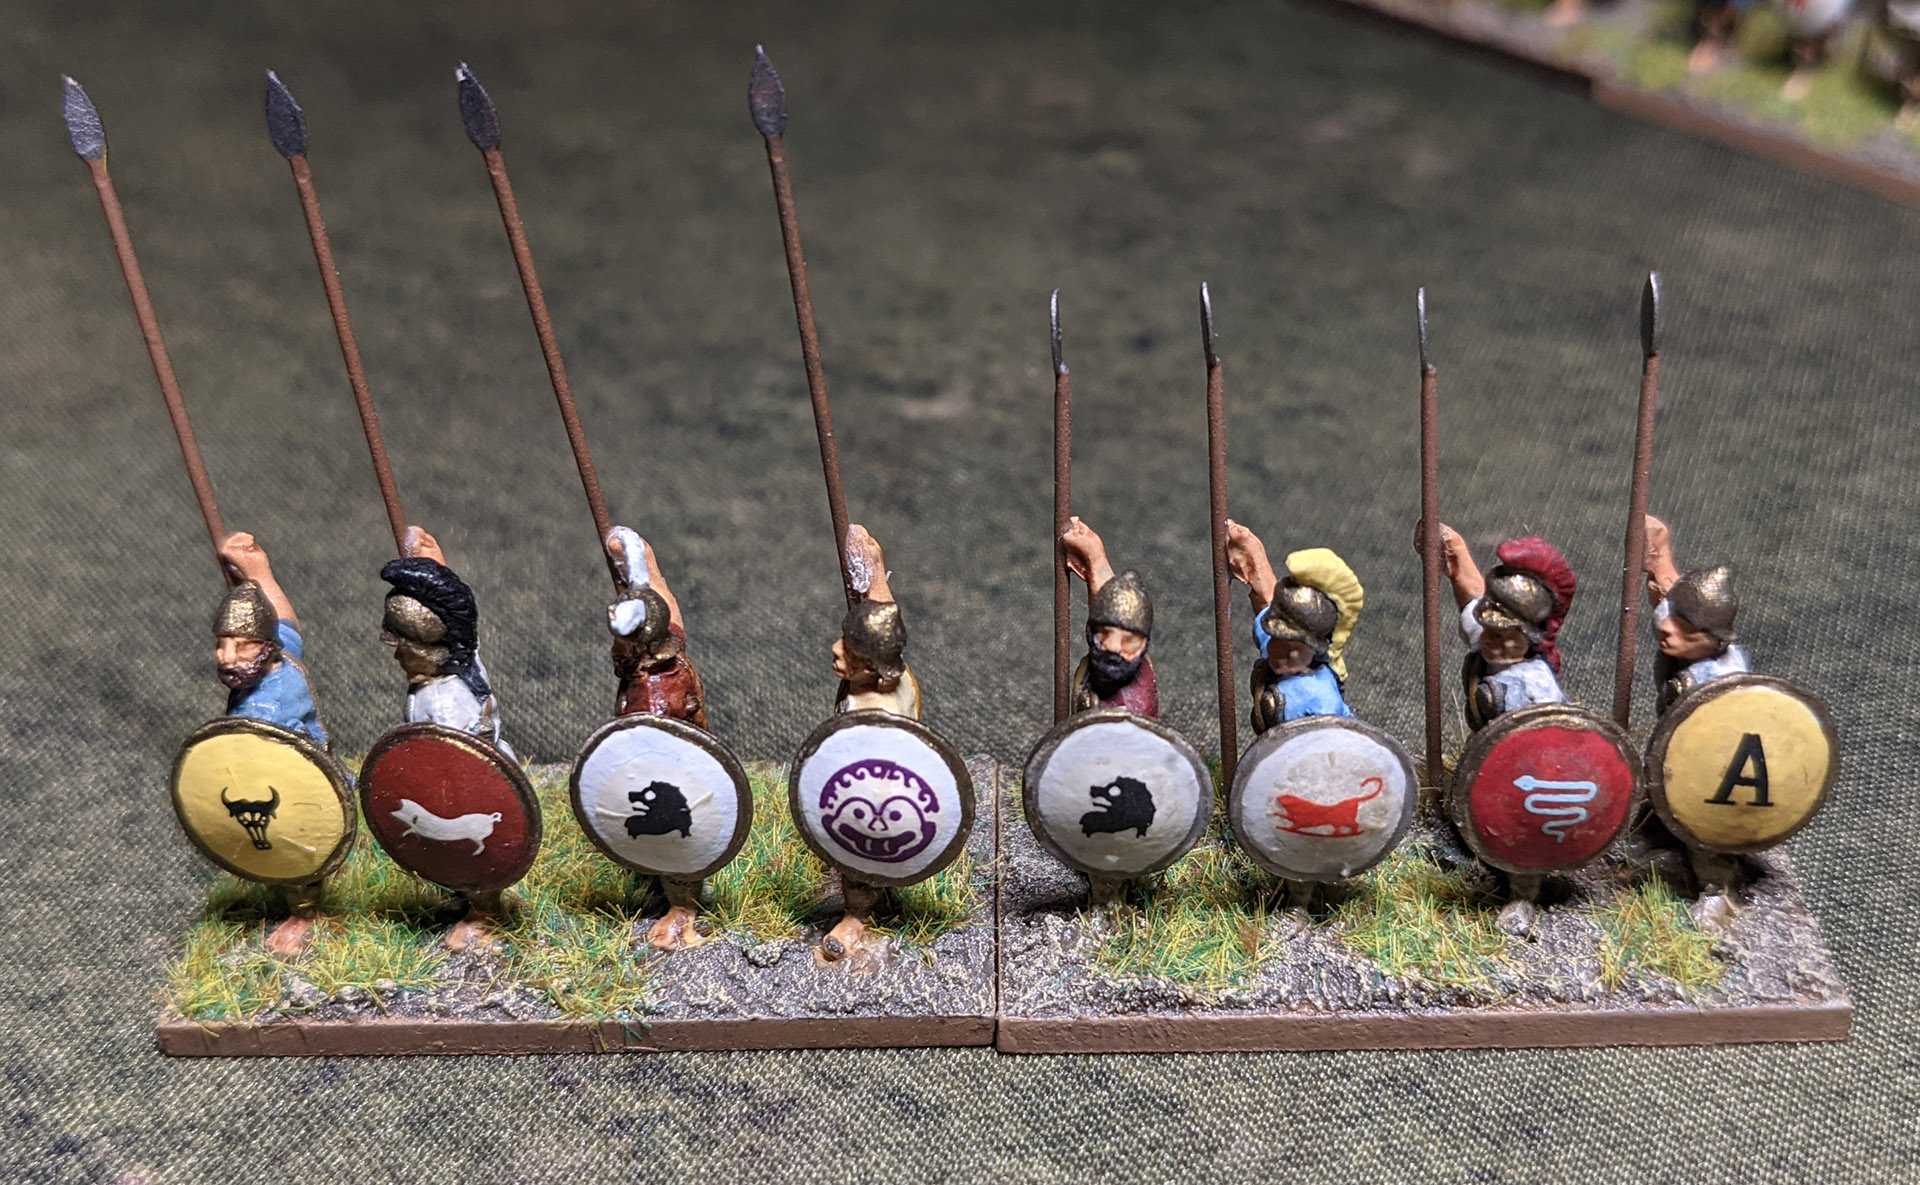 Italiot pike and spear, showing the size difference. I replace the cast spears with wire ones whenever possible (Essex metal is quite soft which is great for customising but terrible for spears).